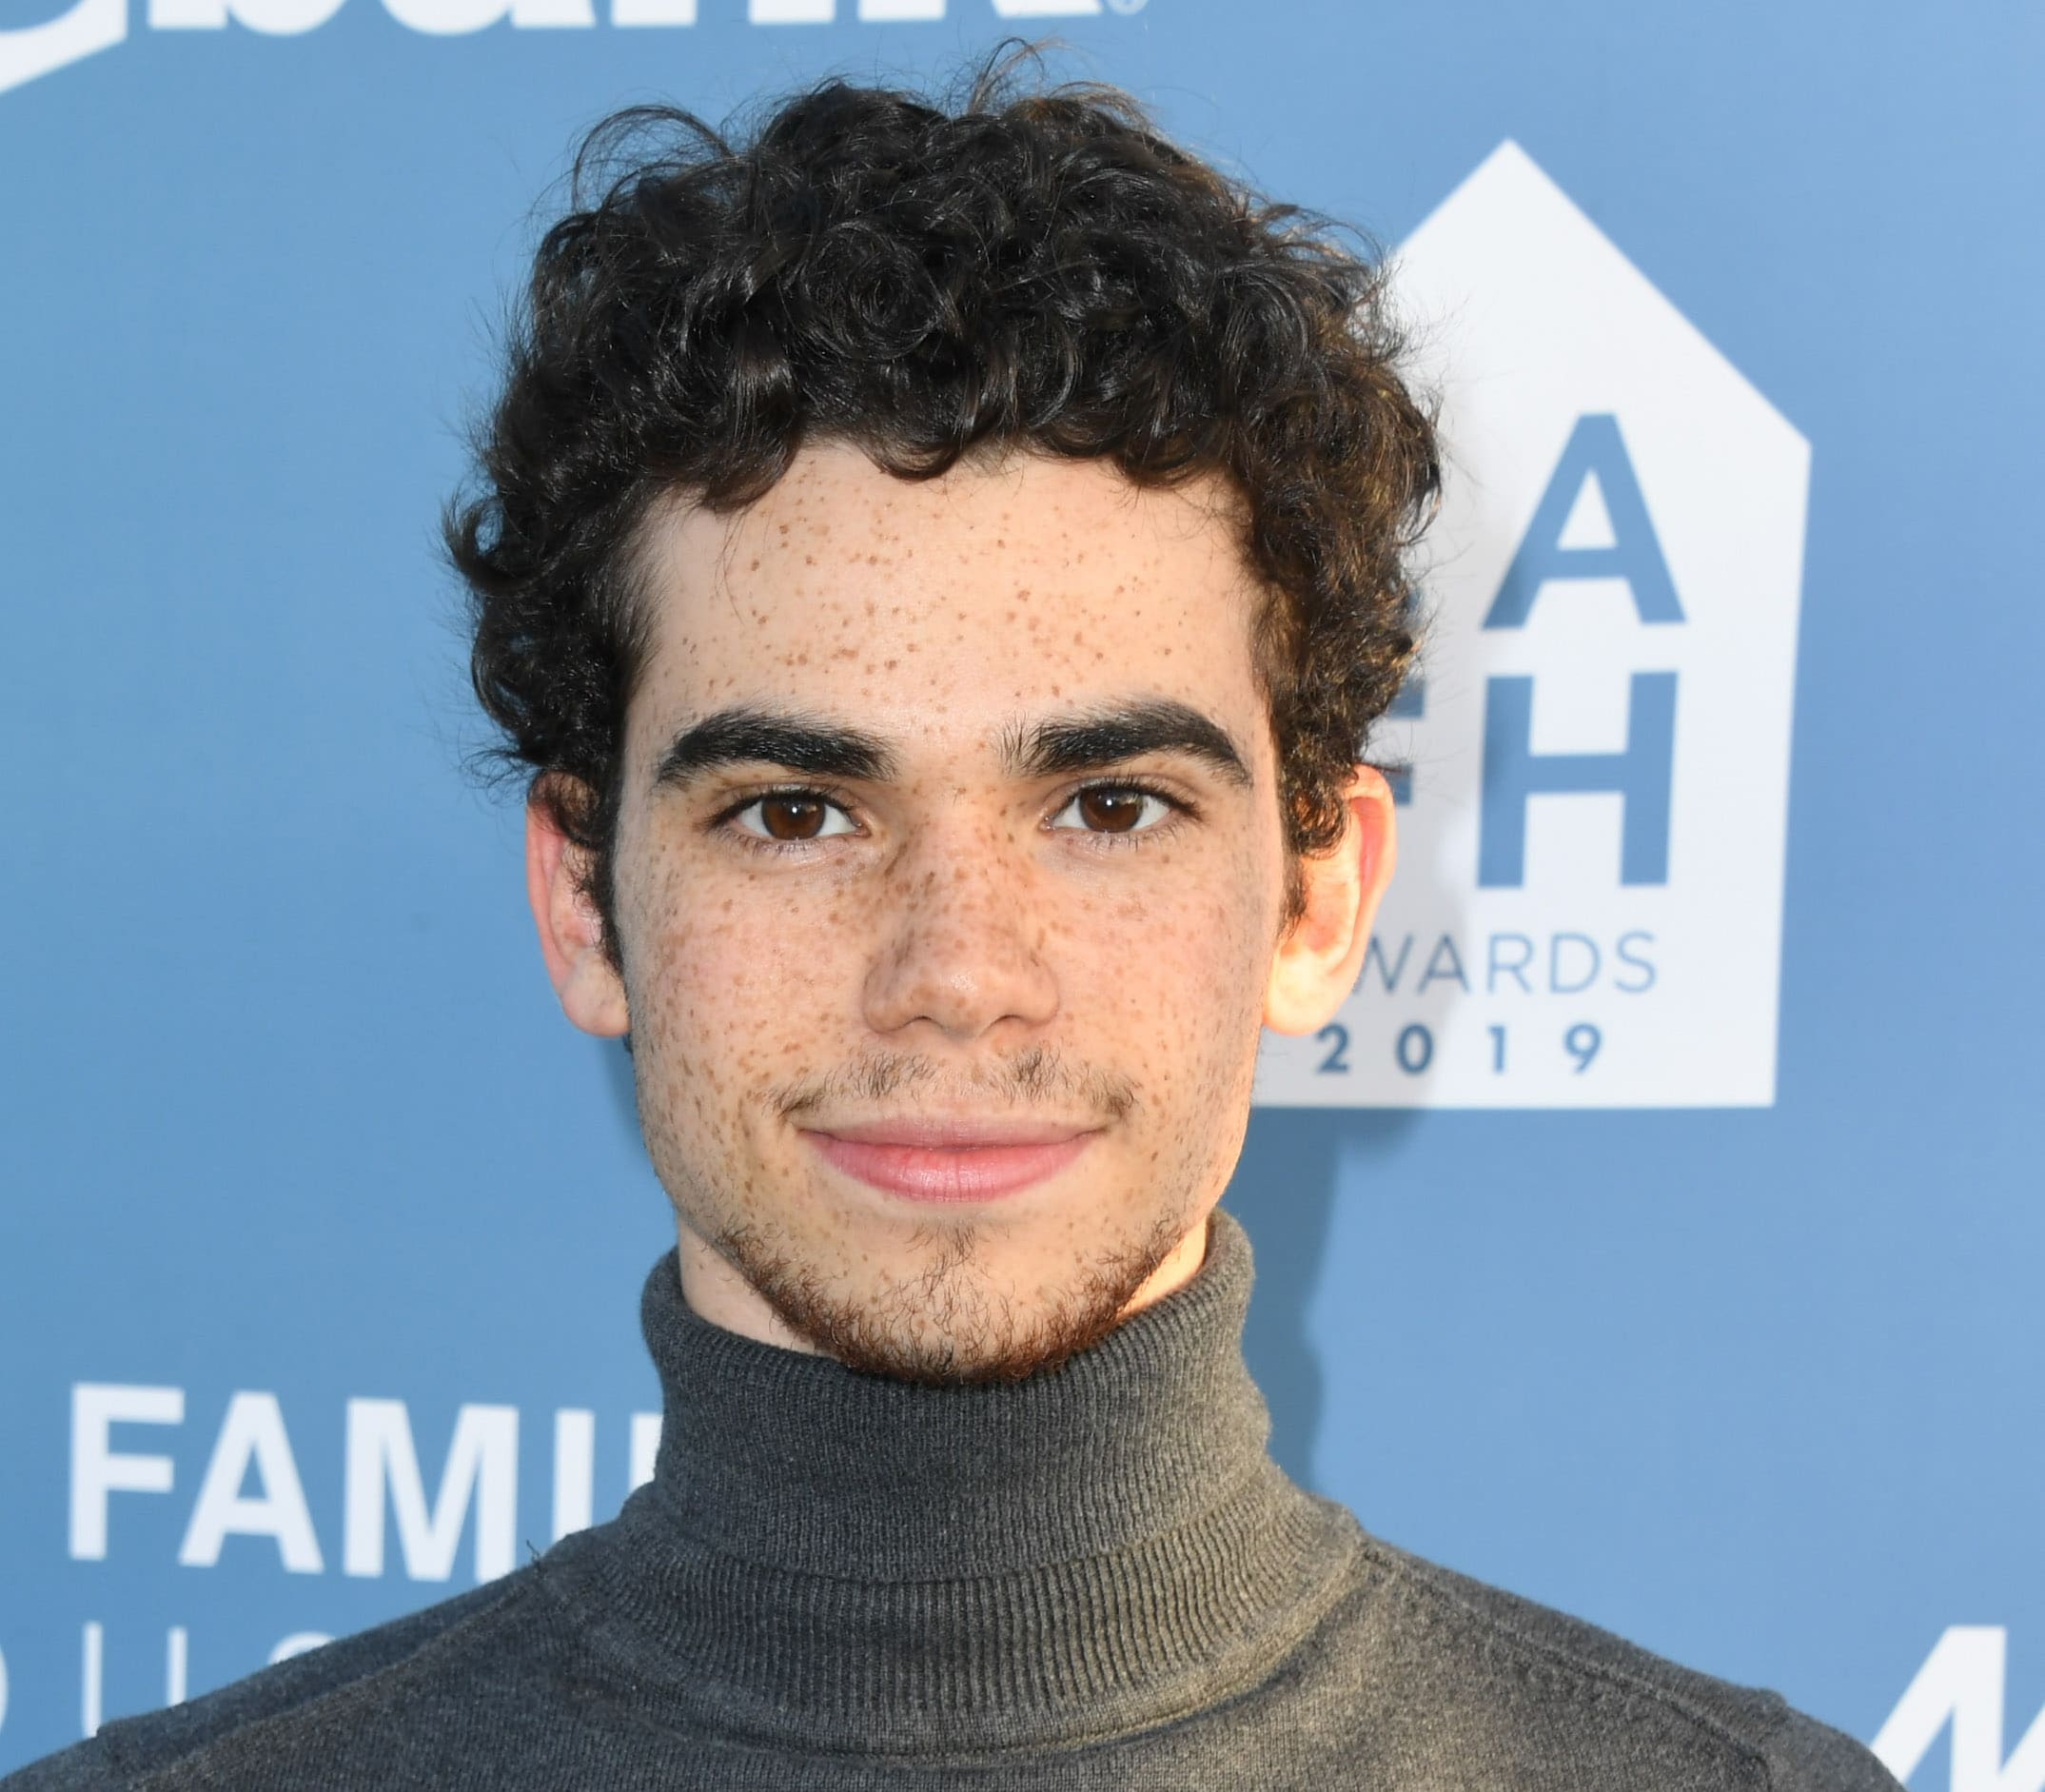 Adam Sandler Pens Heartfelt Tribute to Cameron Boyce - The